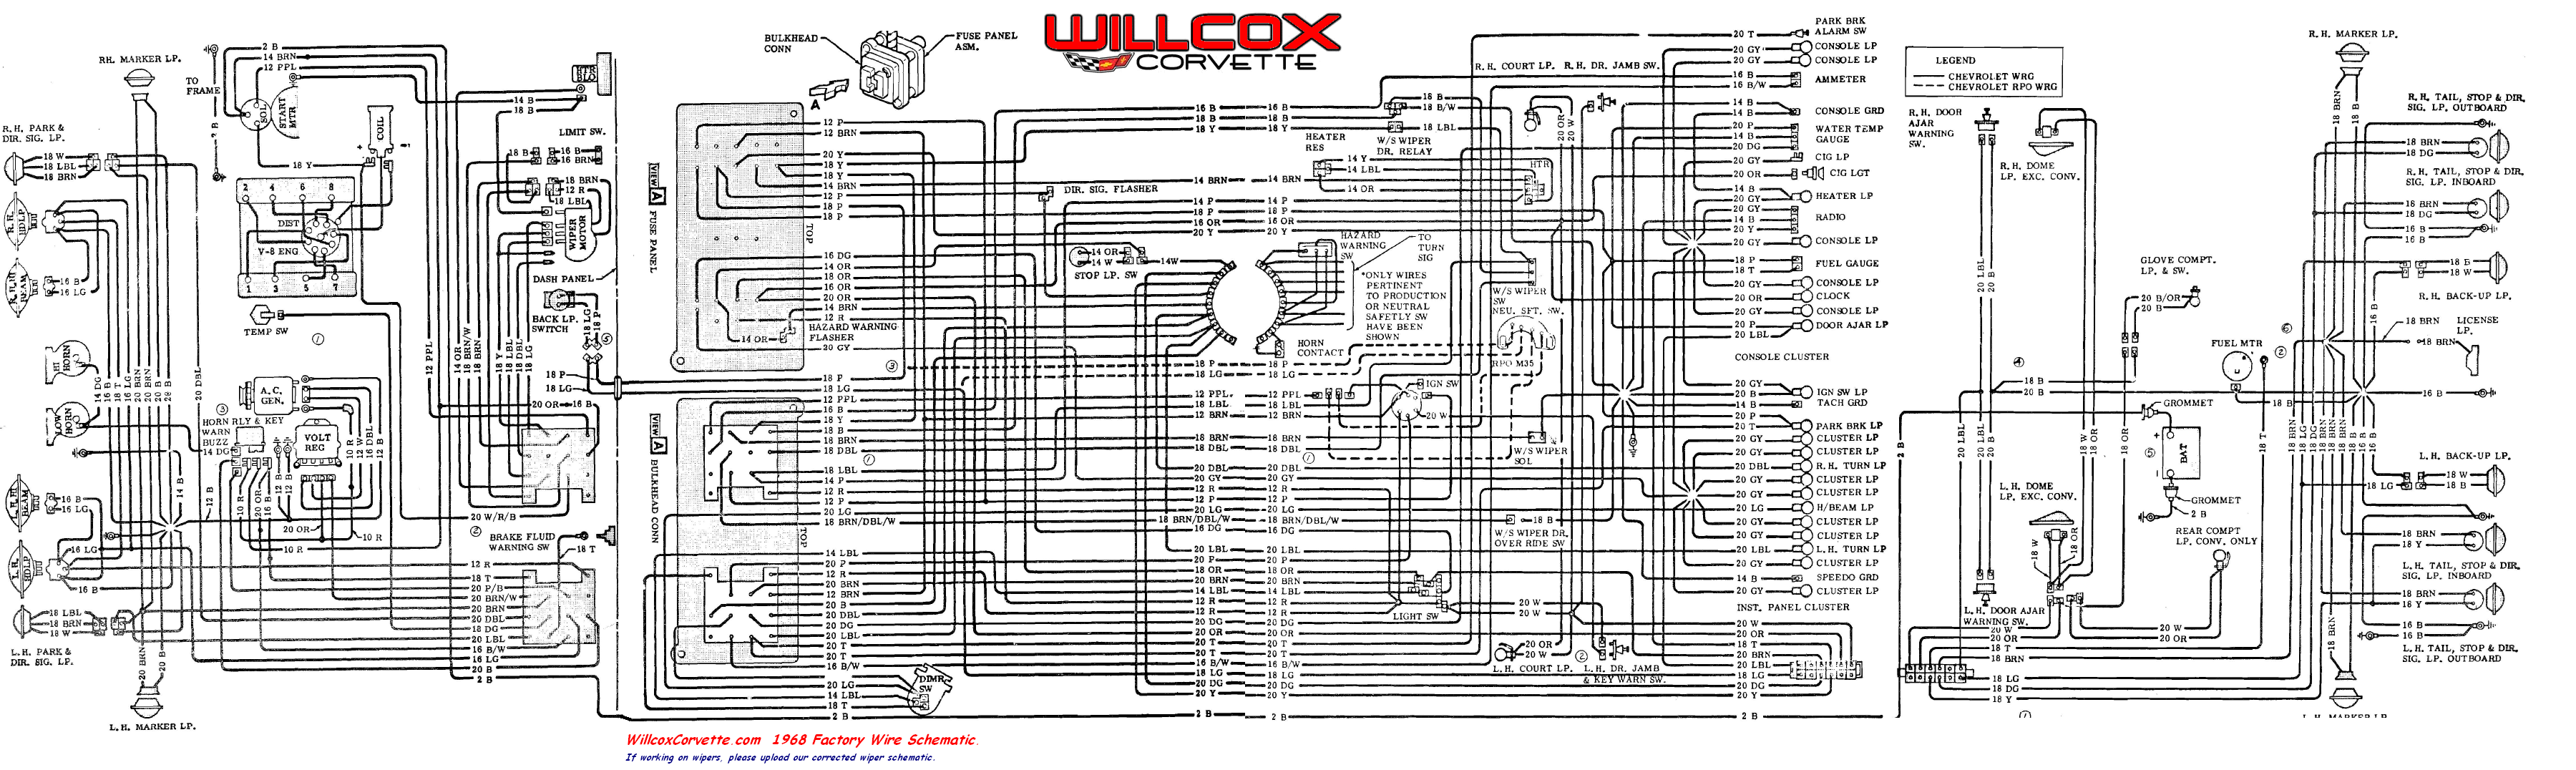 1975 corvette wiring diagram  1975  free engine image for